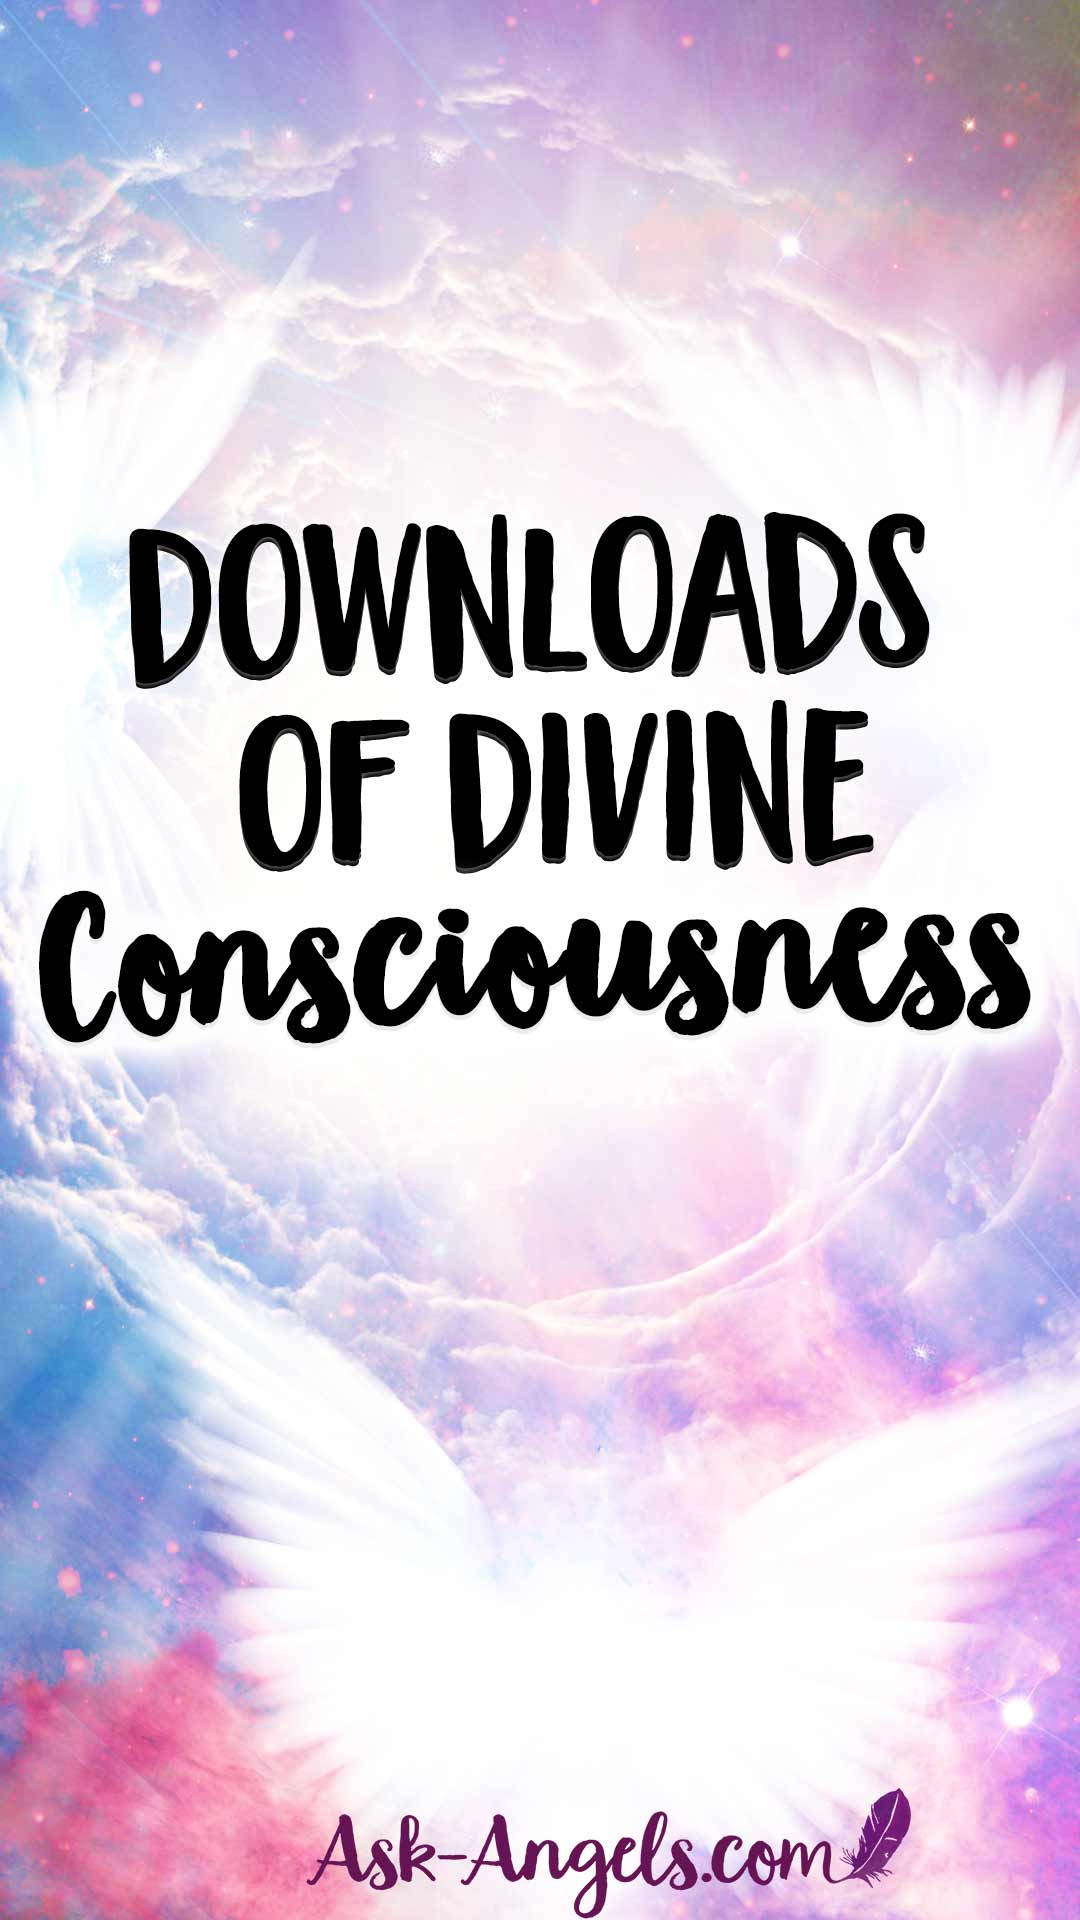 Downloads of Divine Consciousness